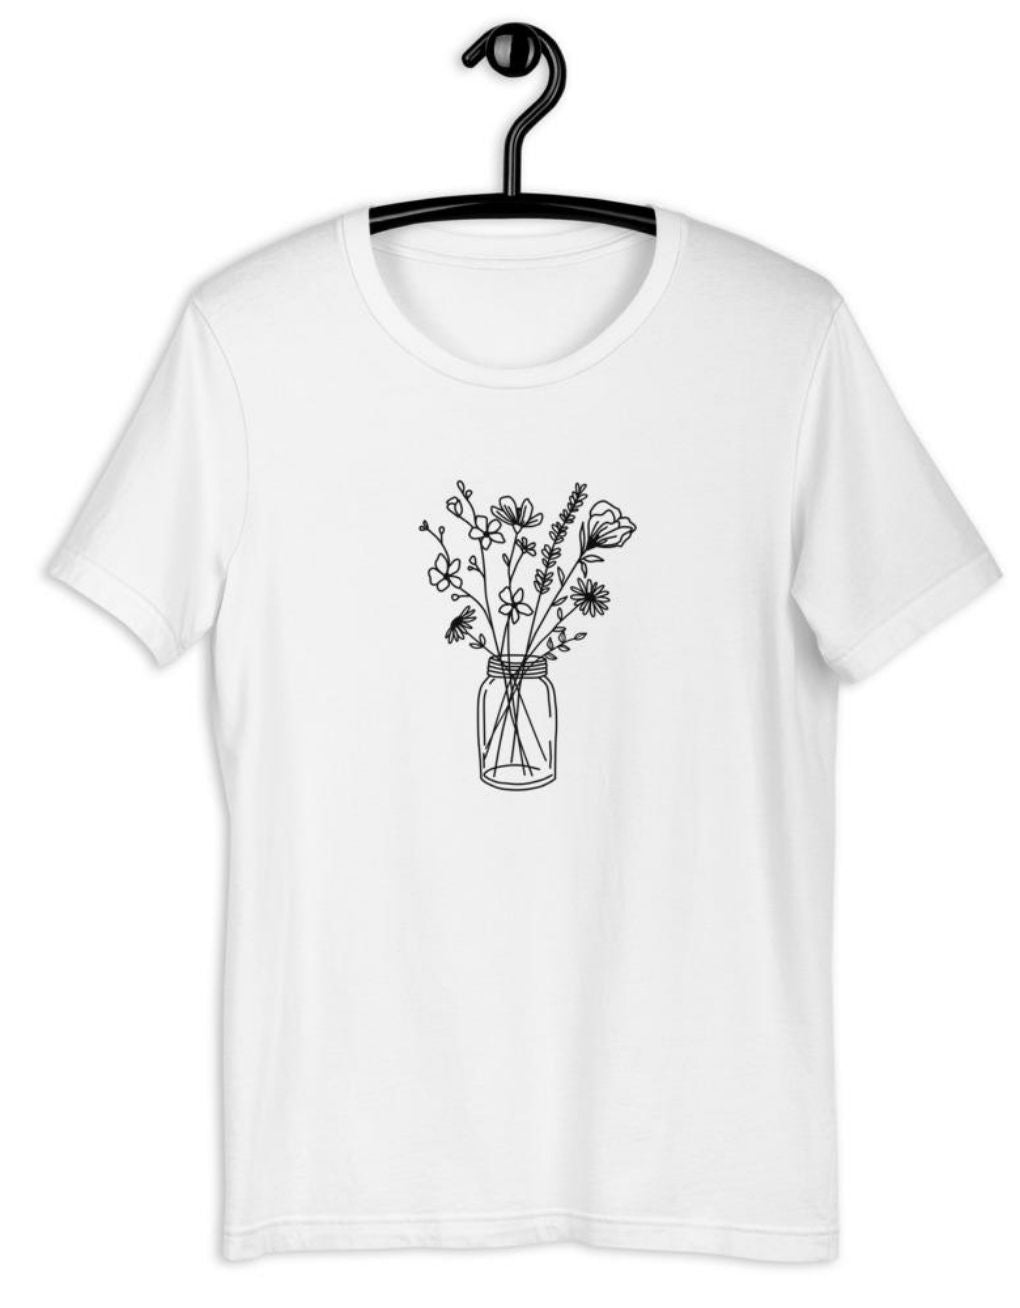 Mason Jar Flowers Women's Tee